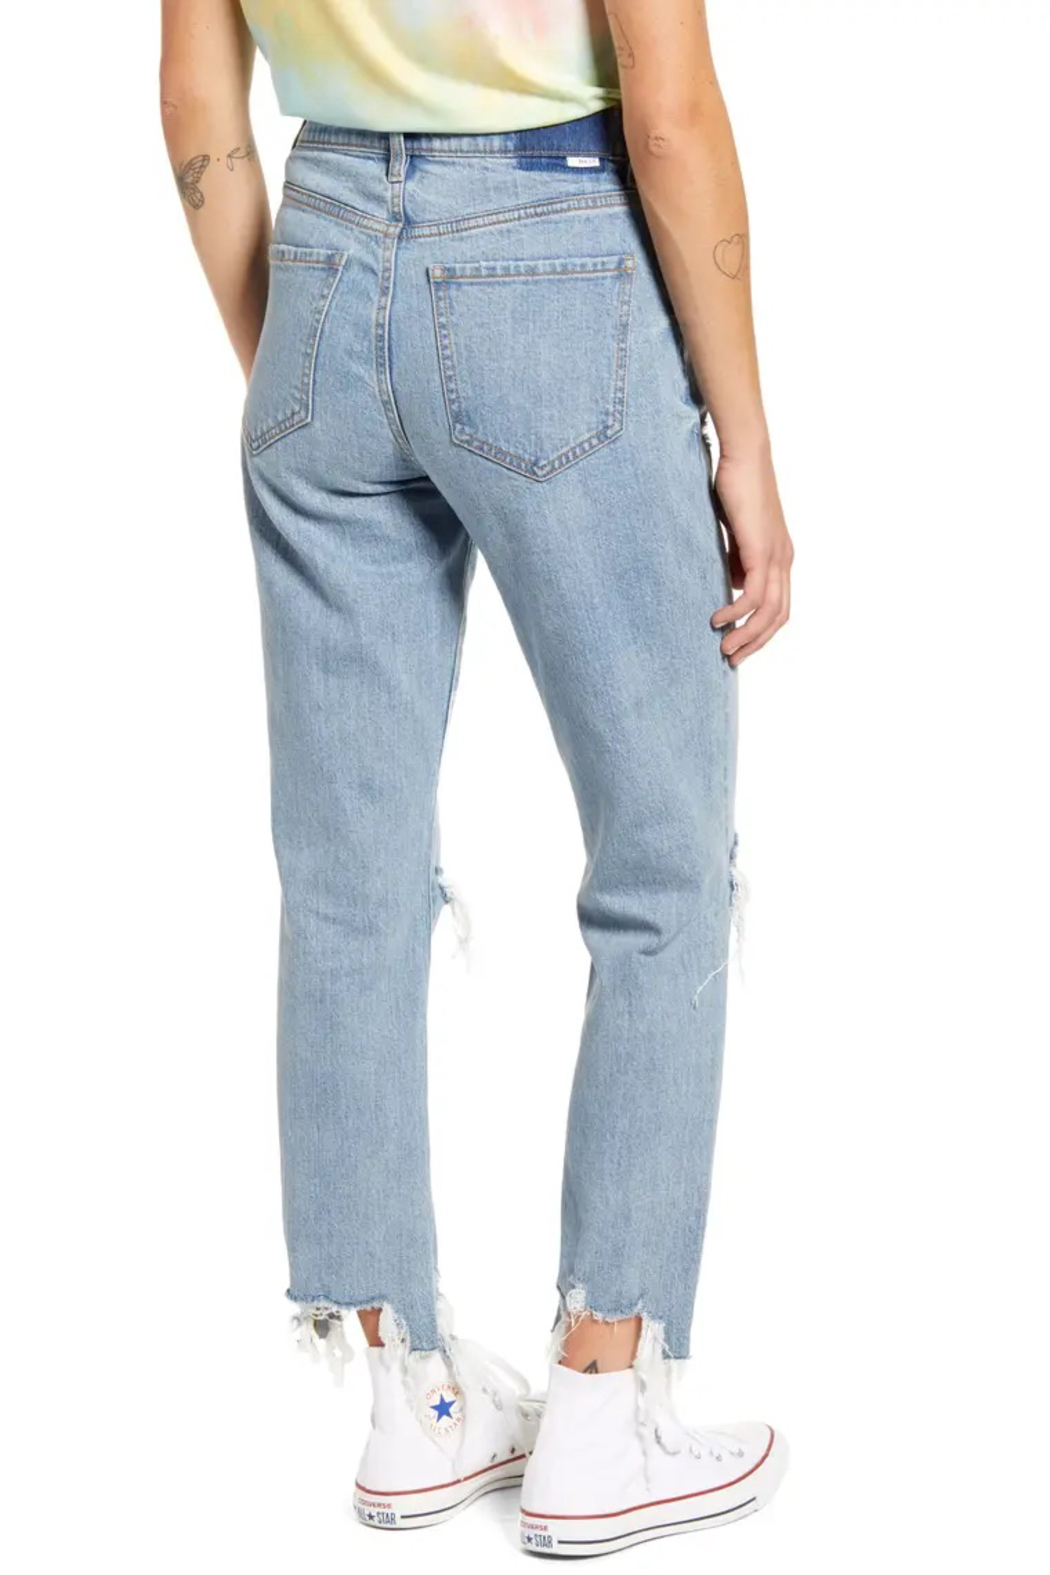 Daze Straight Up Ripped Ankle Skinny Jeans - Side Cropped Image